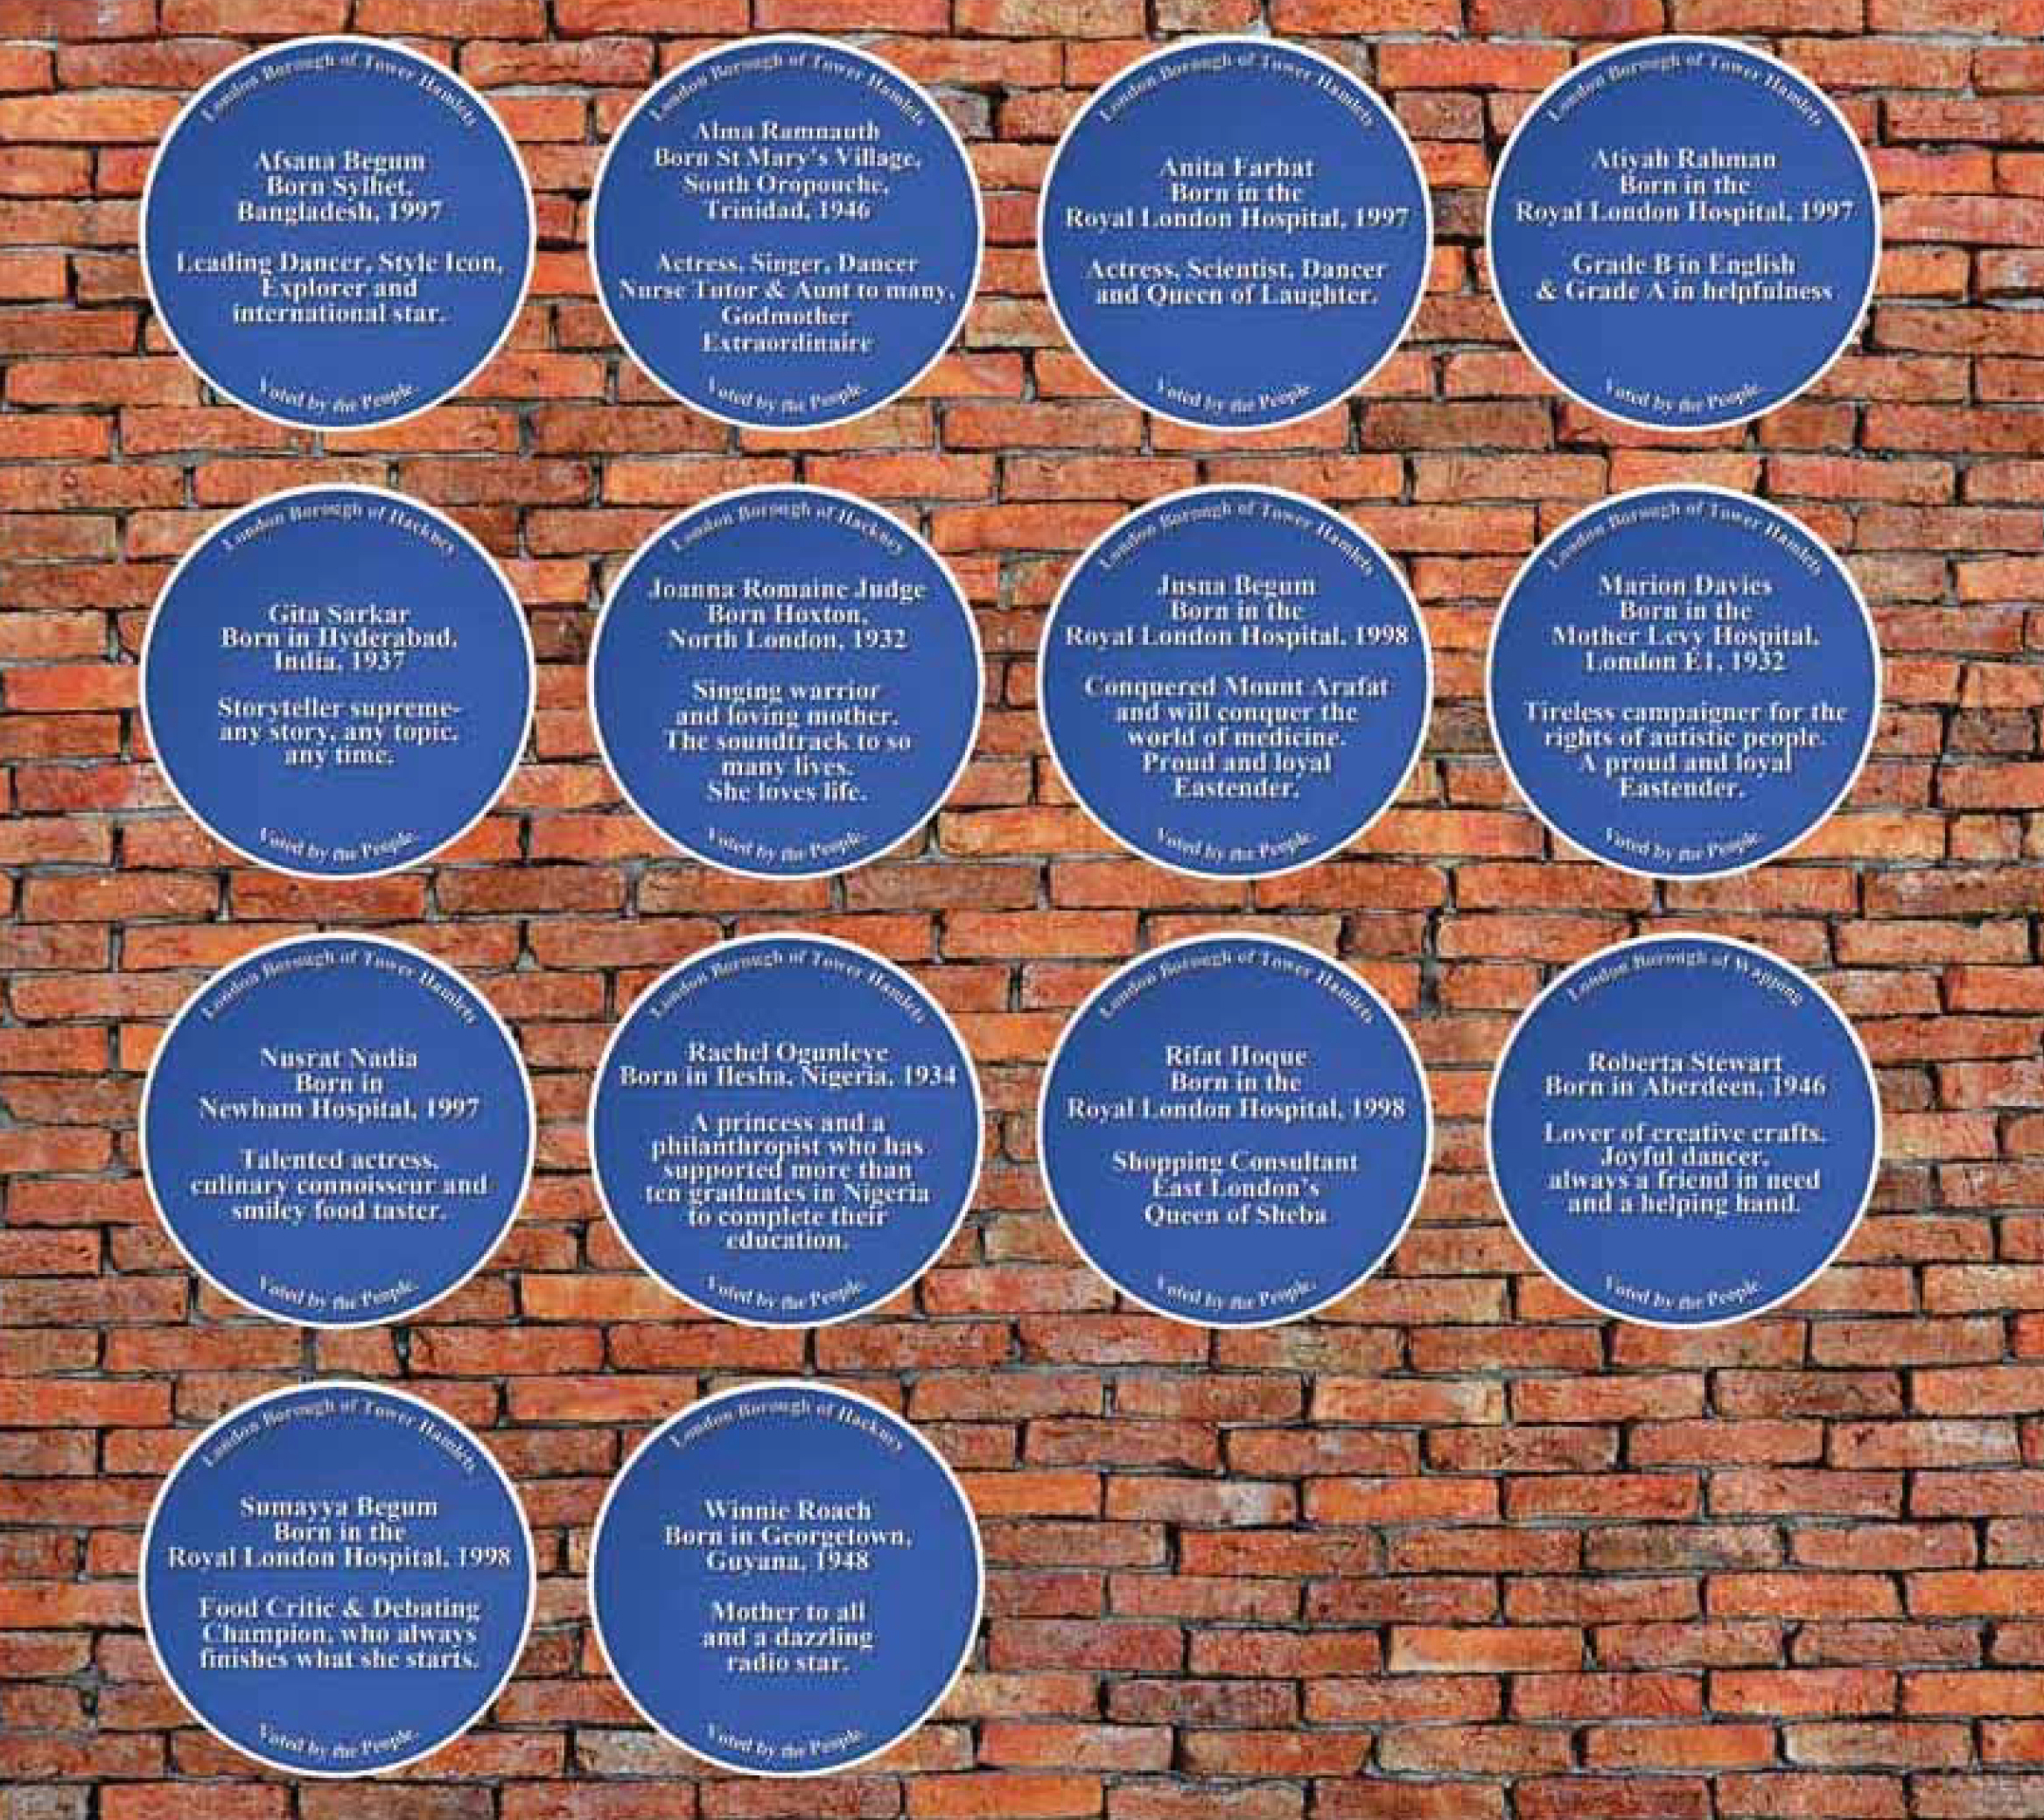 Photo: Nick Pinder, 2012 Blue plaques from Where the Heart Is women's project. The text in praise of each person was written by others in the group. For more details download: Wild, Wild Women report.